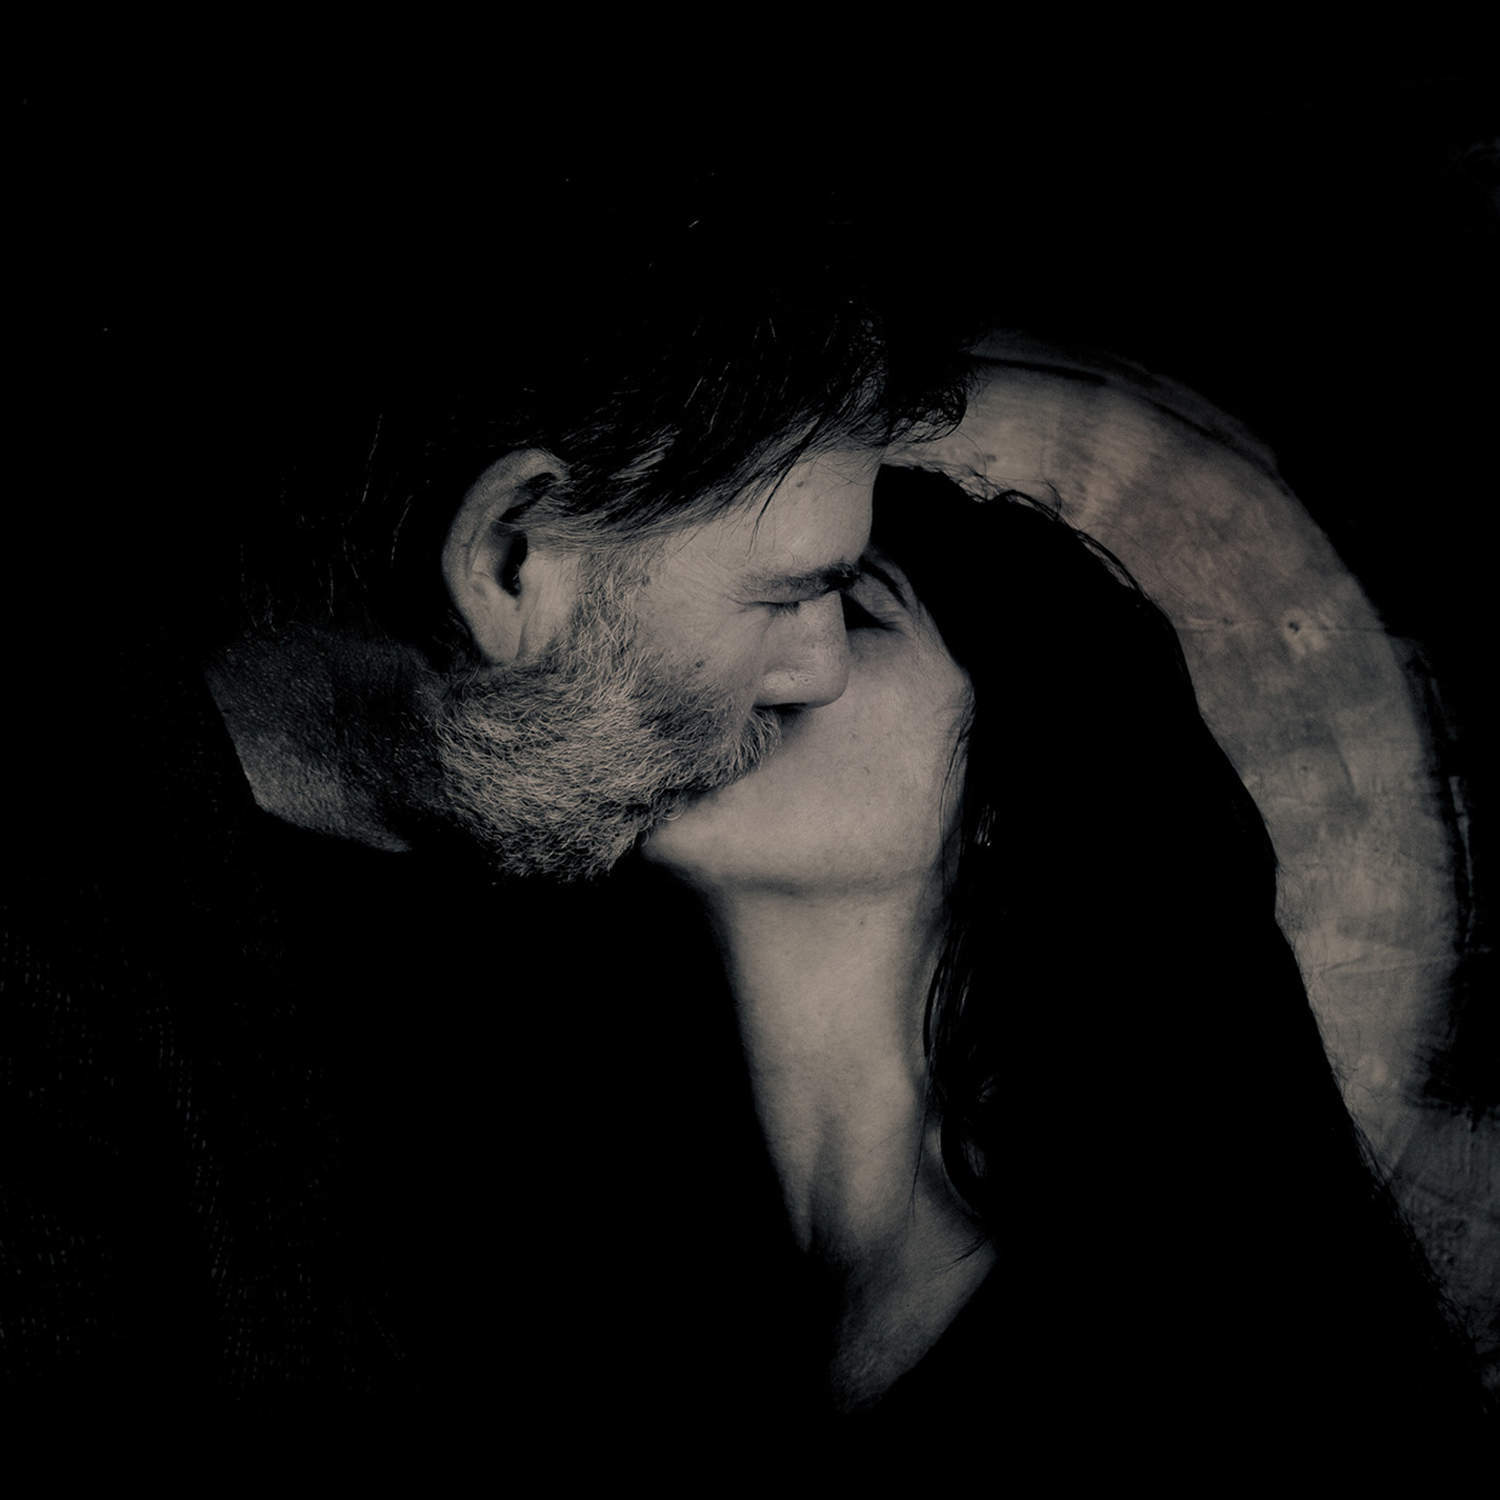 Jeff and Susanne Kelly - By Reckless Moonlight